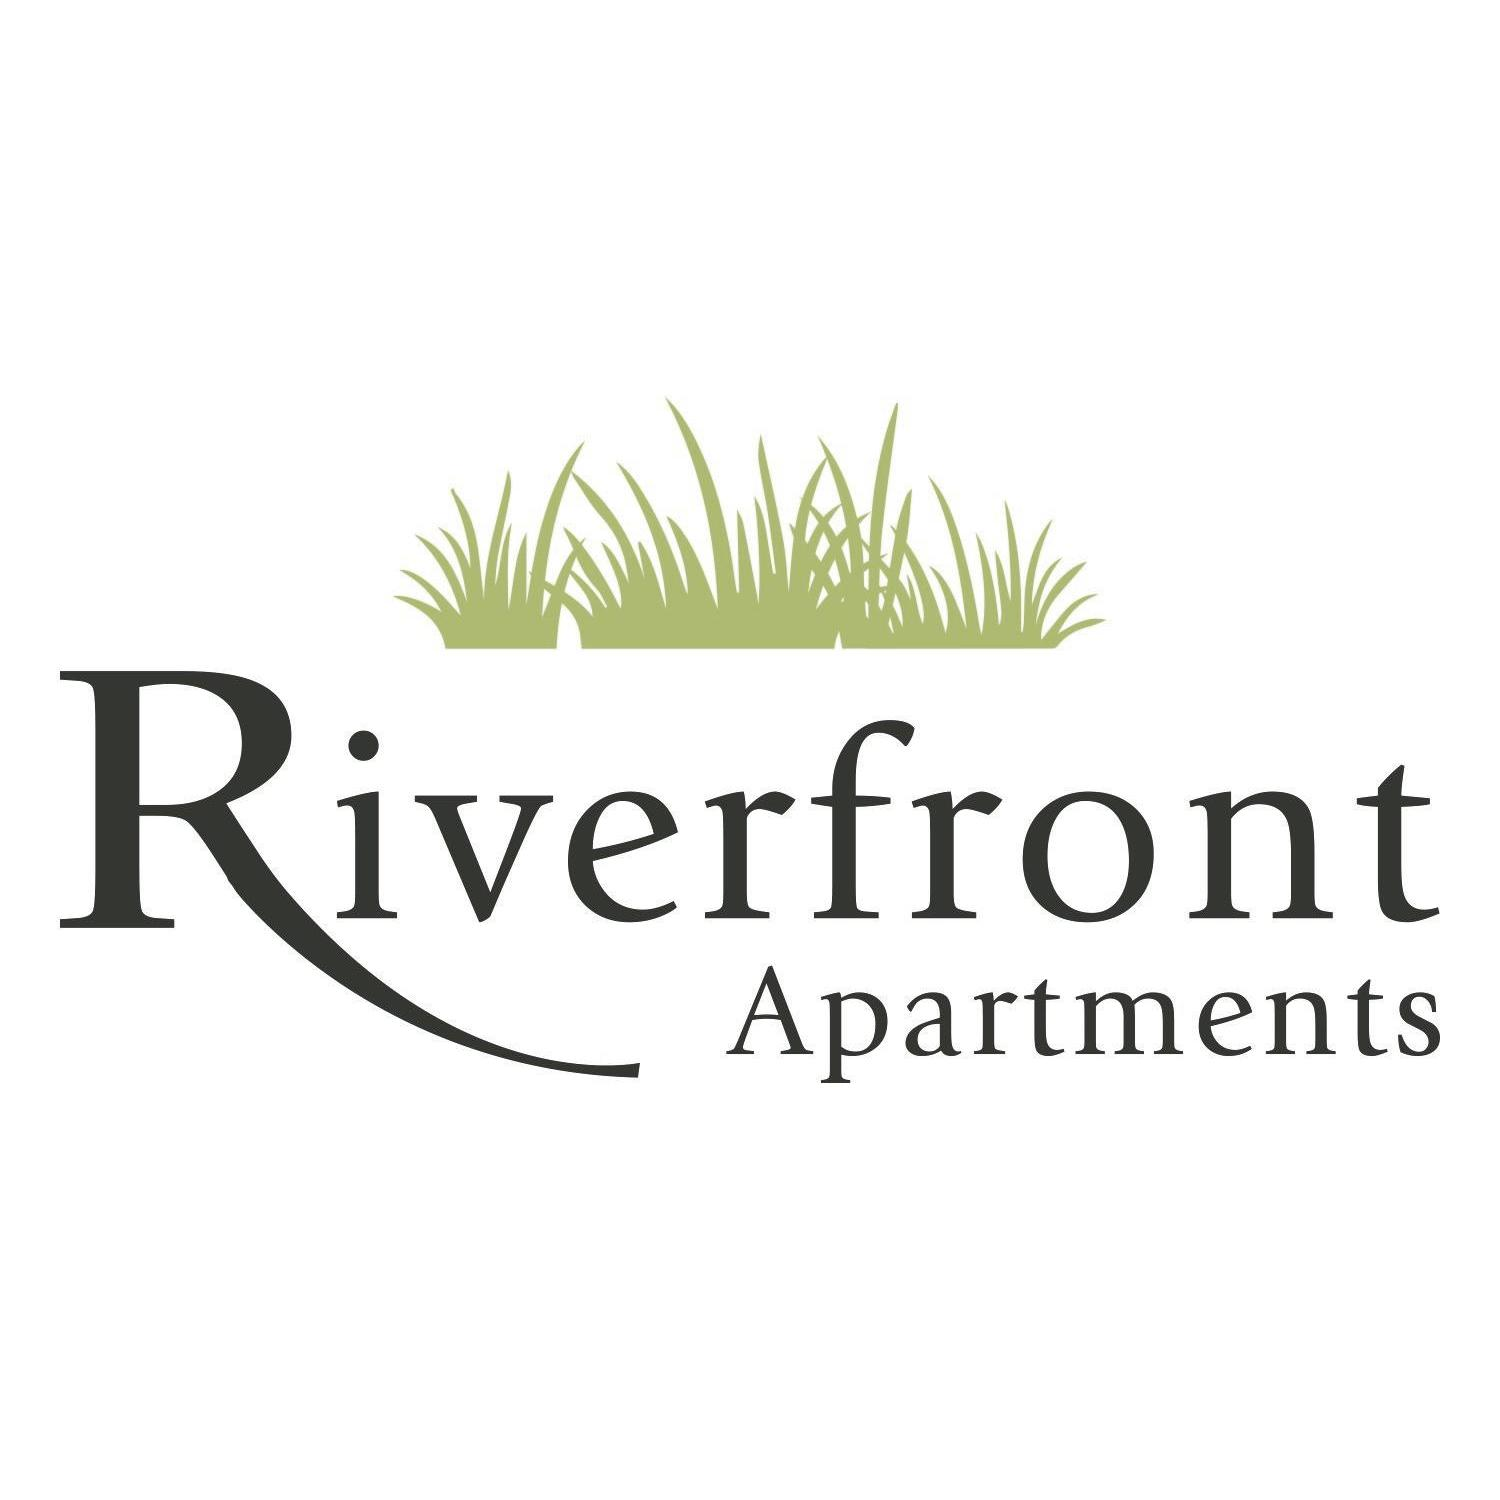 Riverfront Apartments image 7